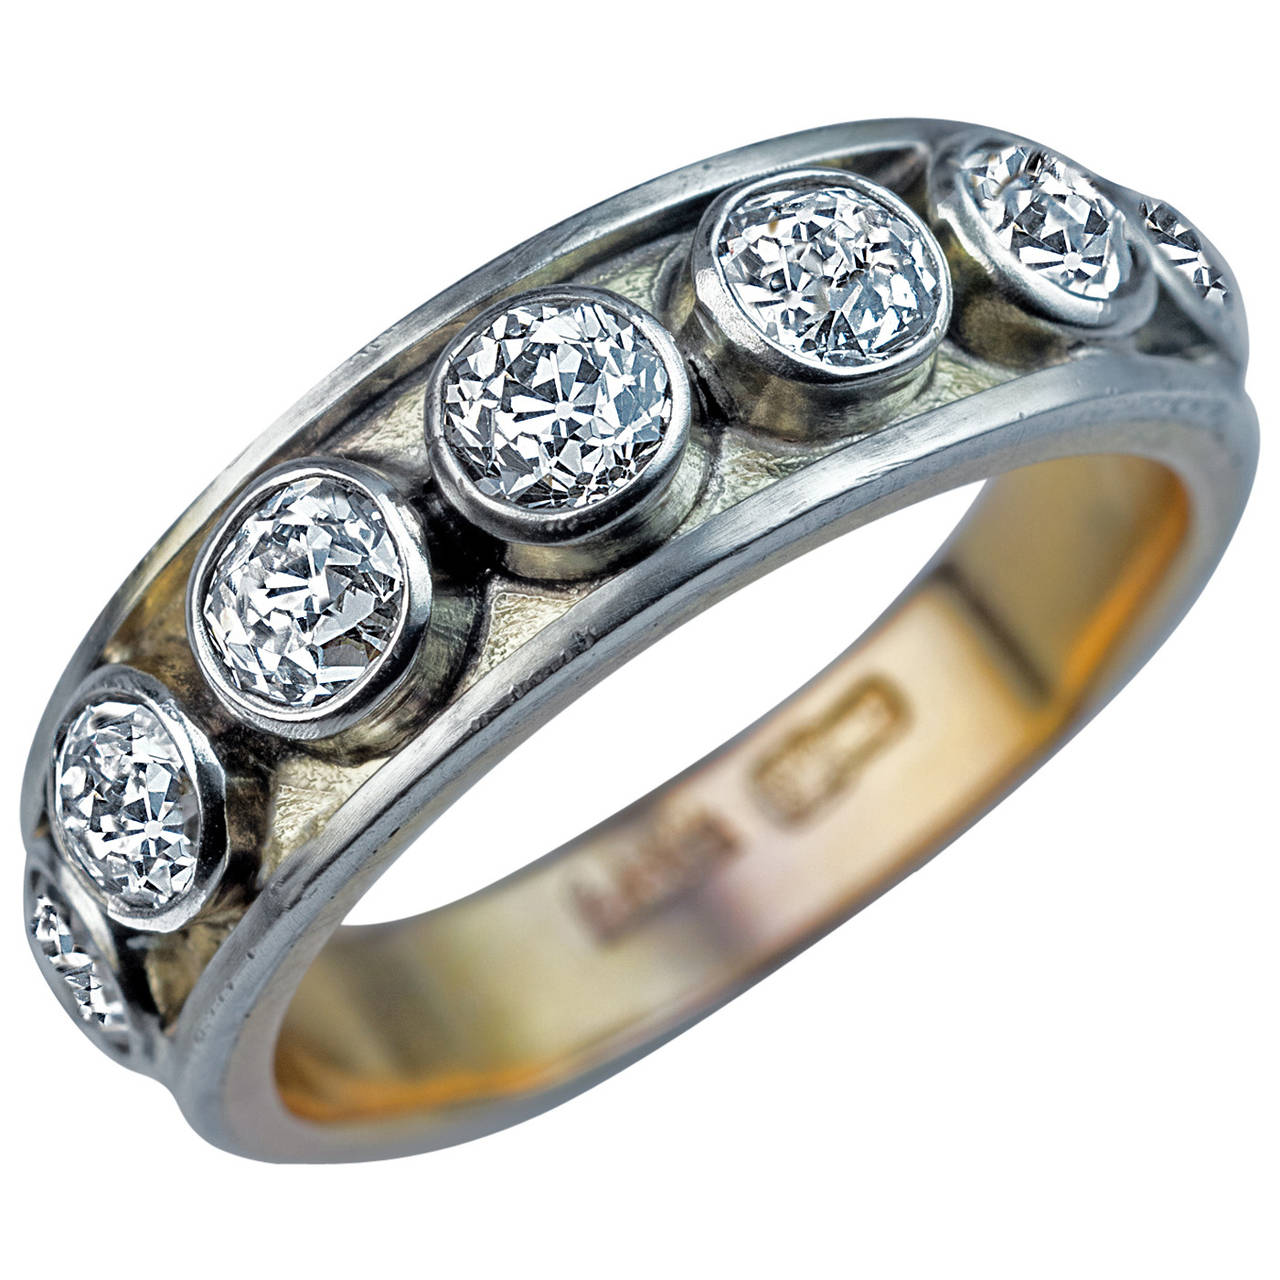 Antique Russian Men's Diamond Gold Band Ring Mens rings